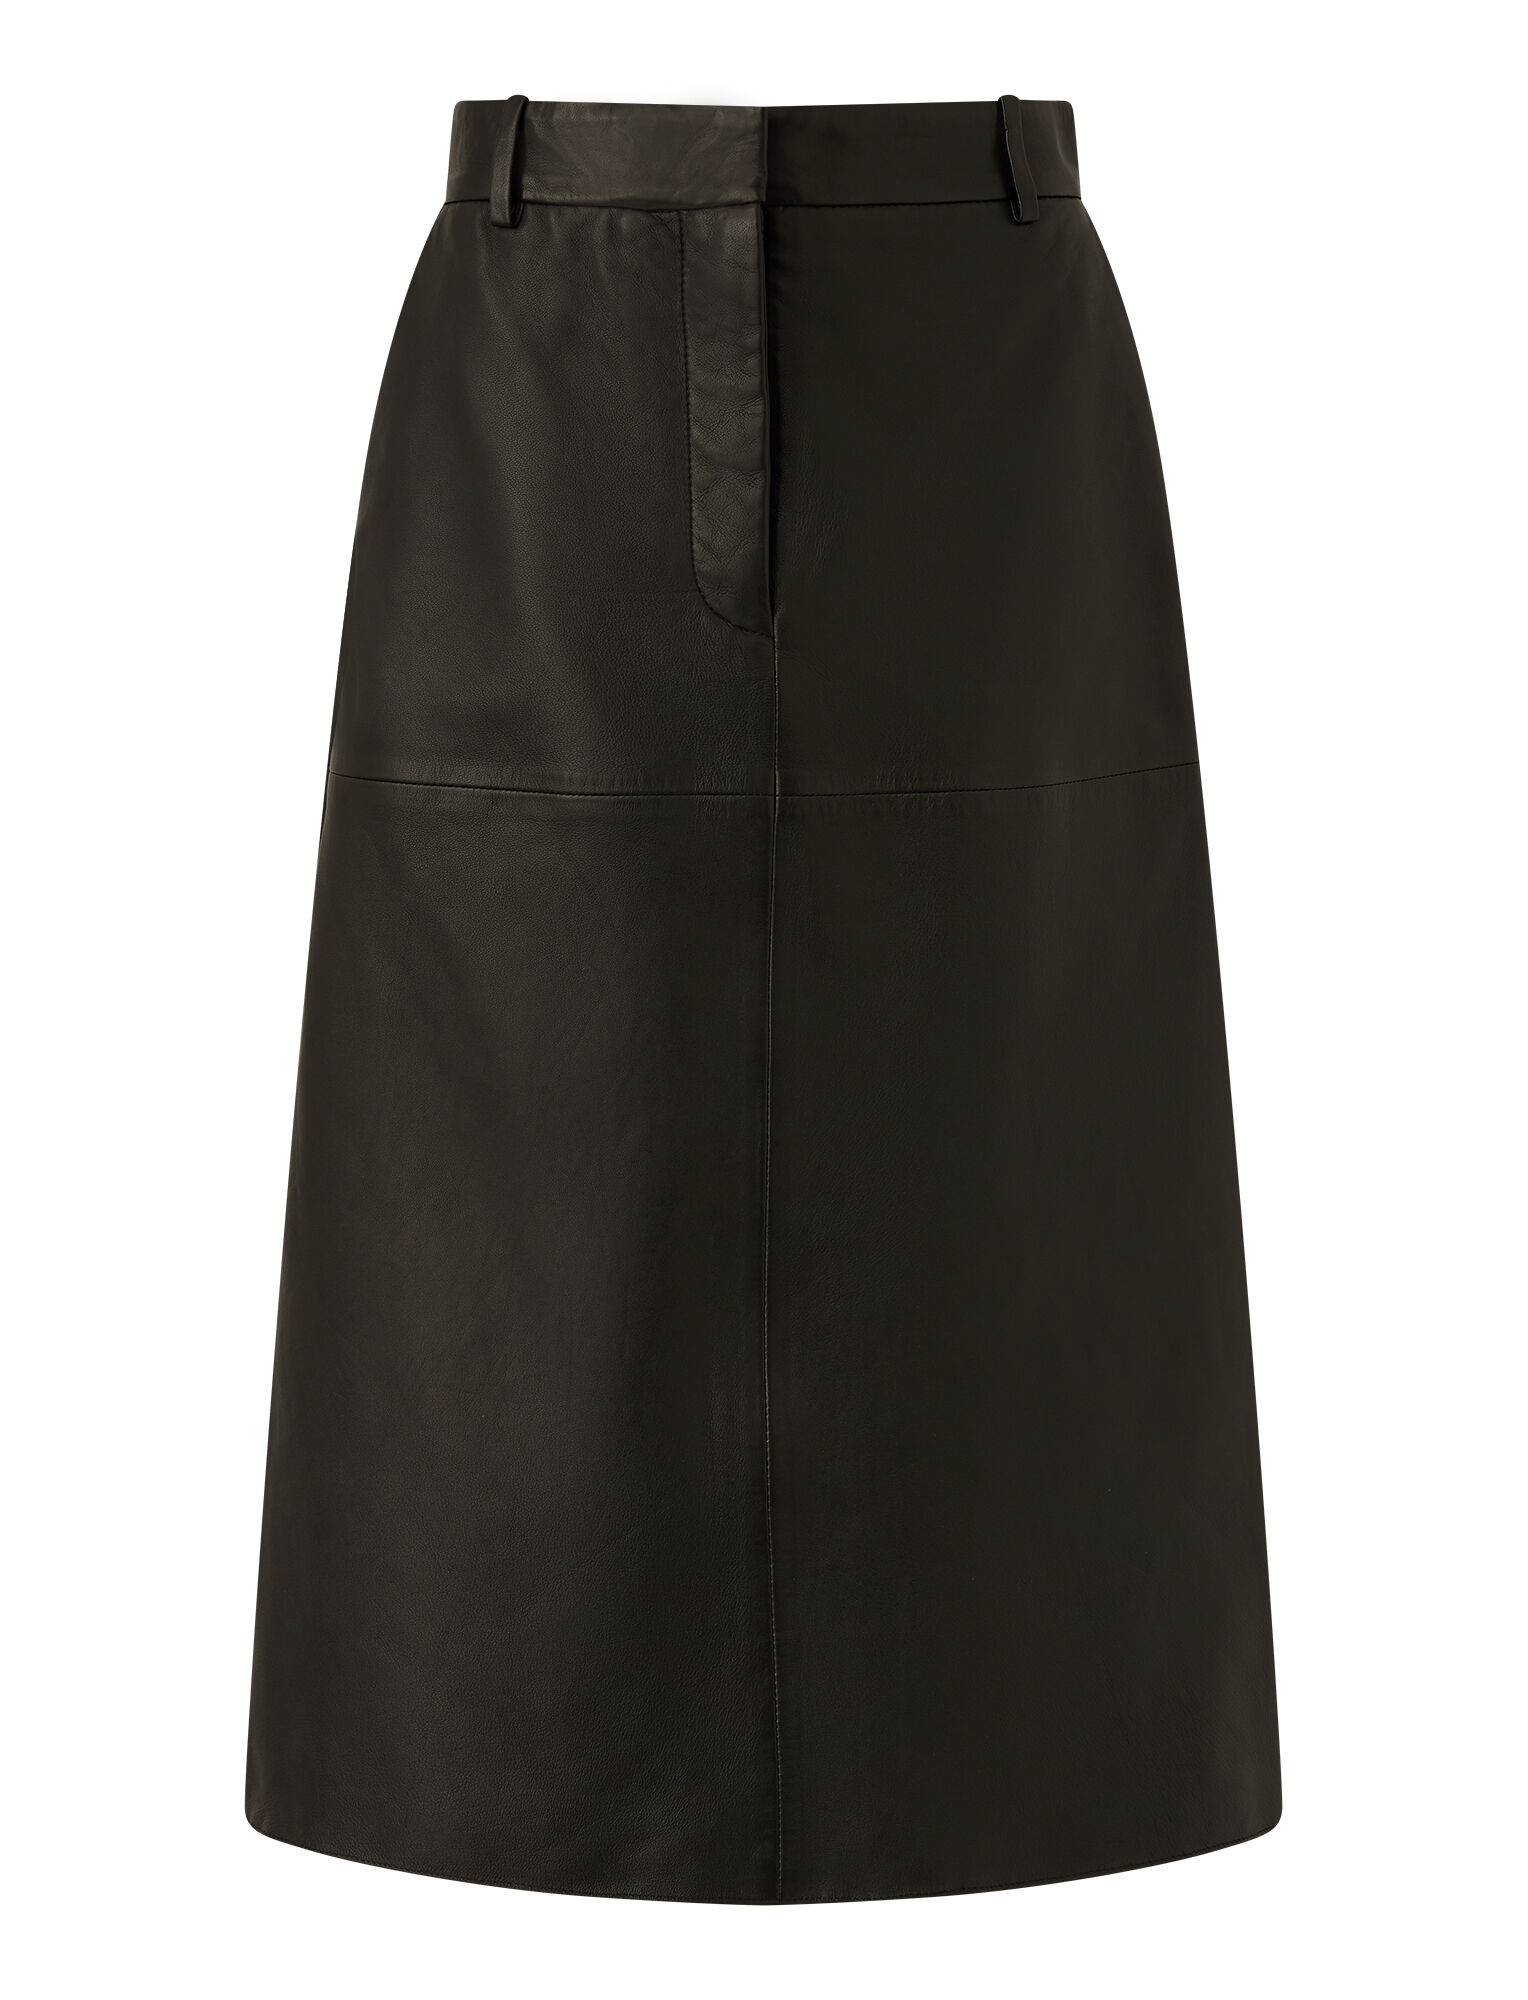 Joseph, Nappa Leather Salva Skirt, in BLACK